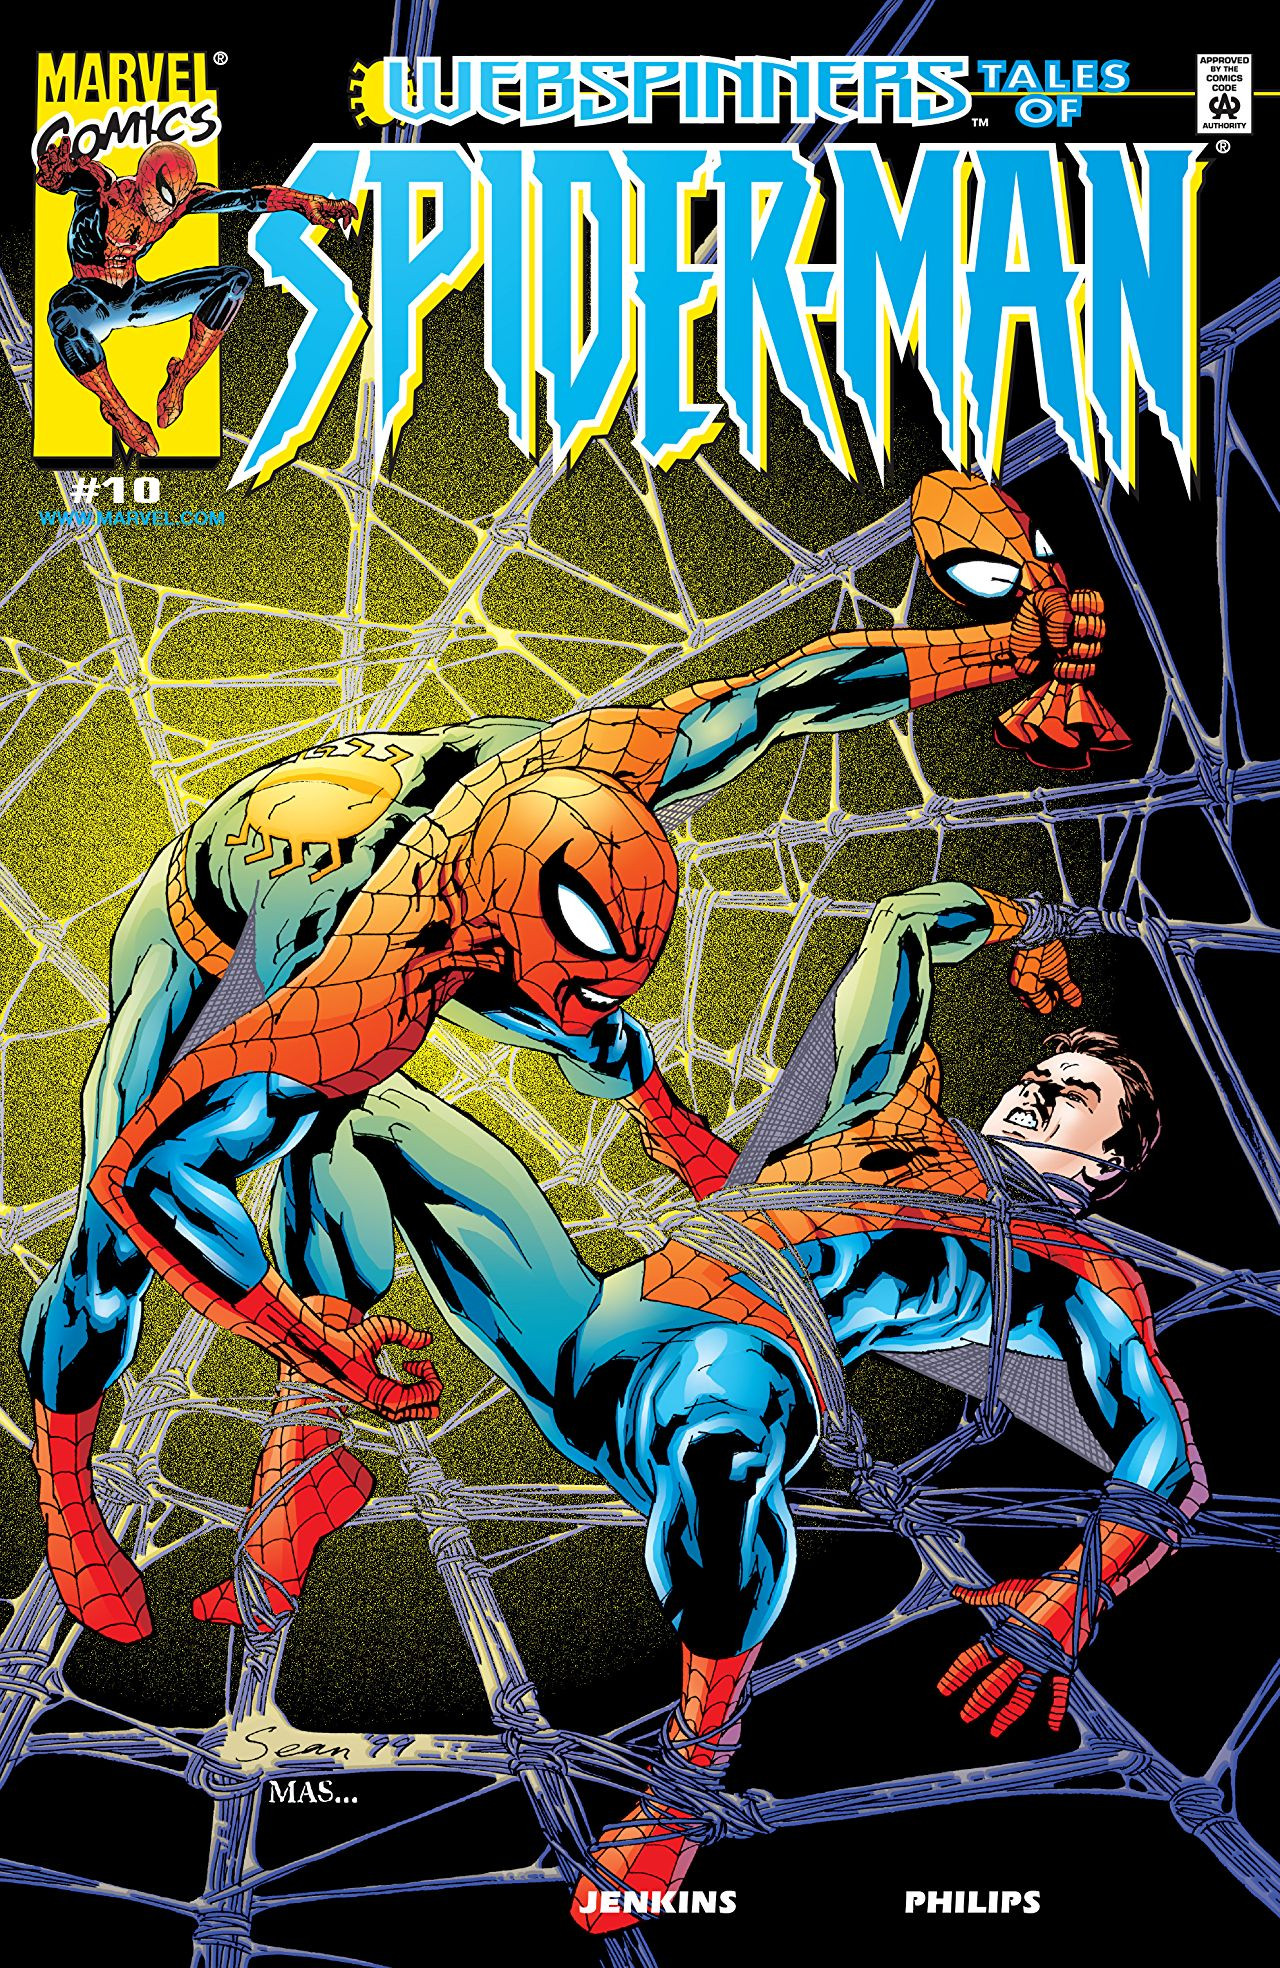 Webspinners: Tales of Spider-Man Vol 1 10